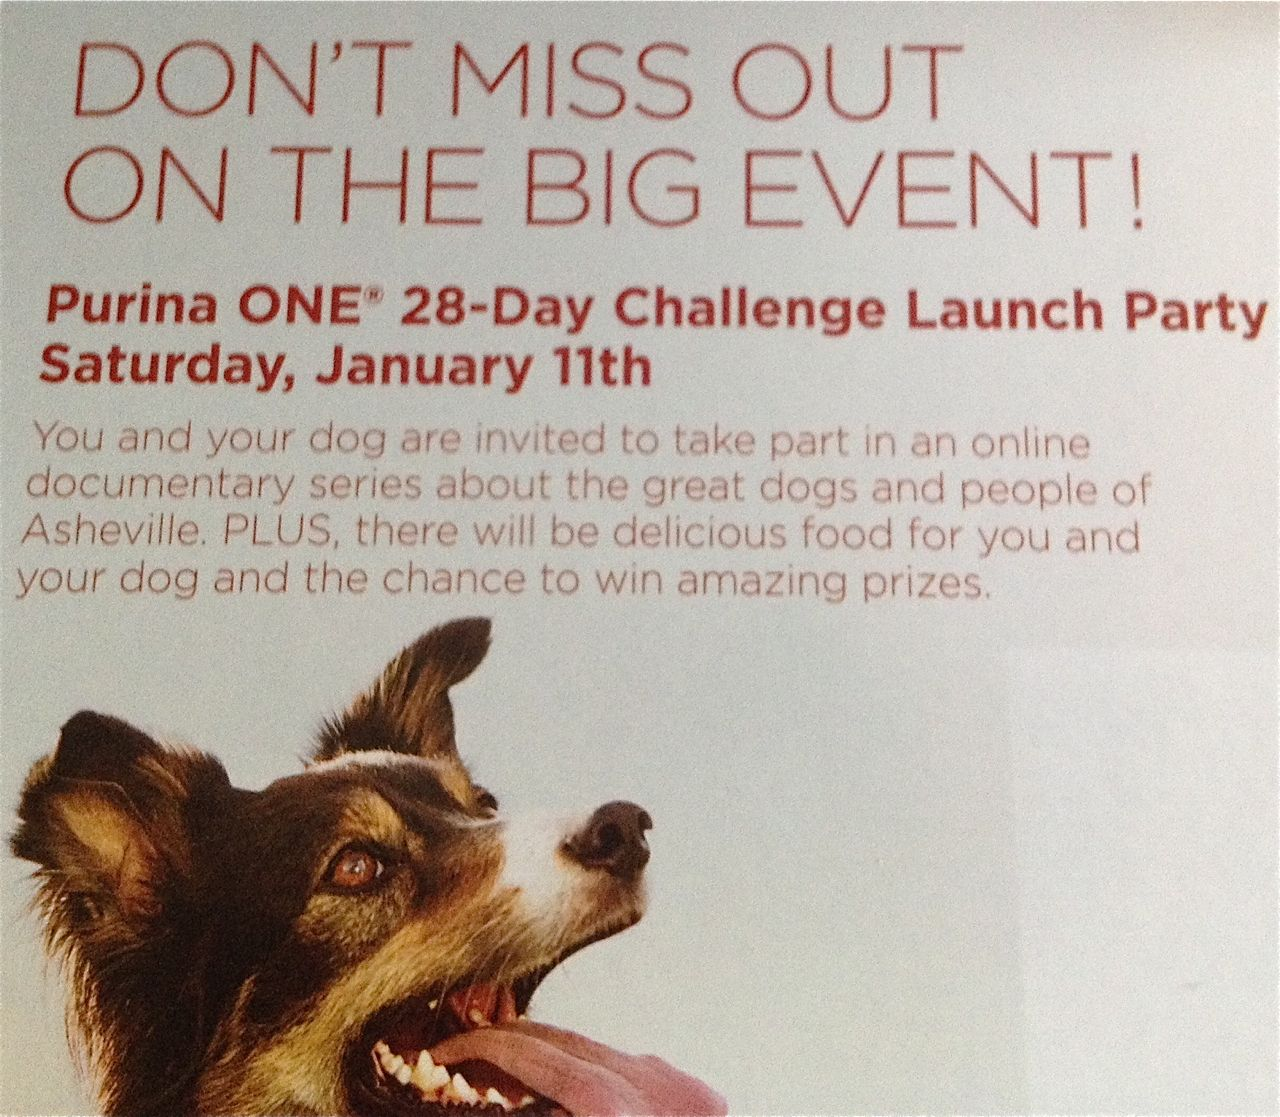 Purina to launch marketing push on Jan. 11 in downtown Asheville